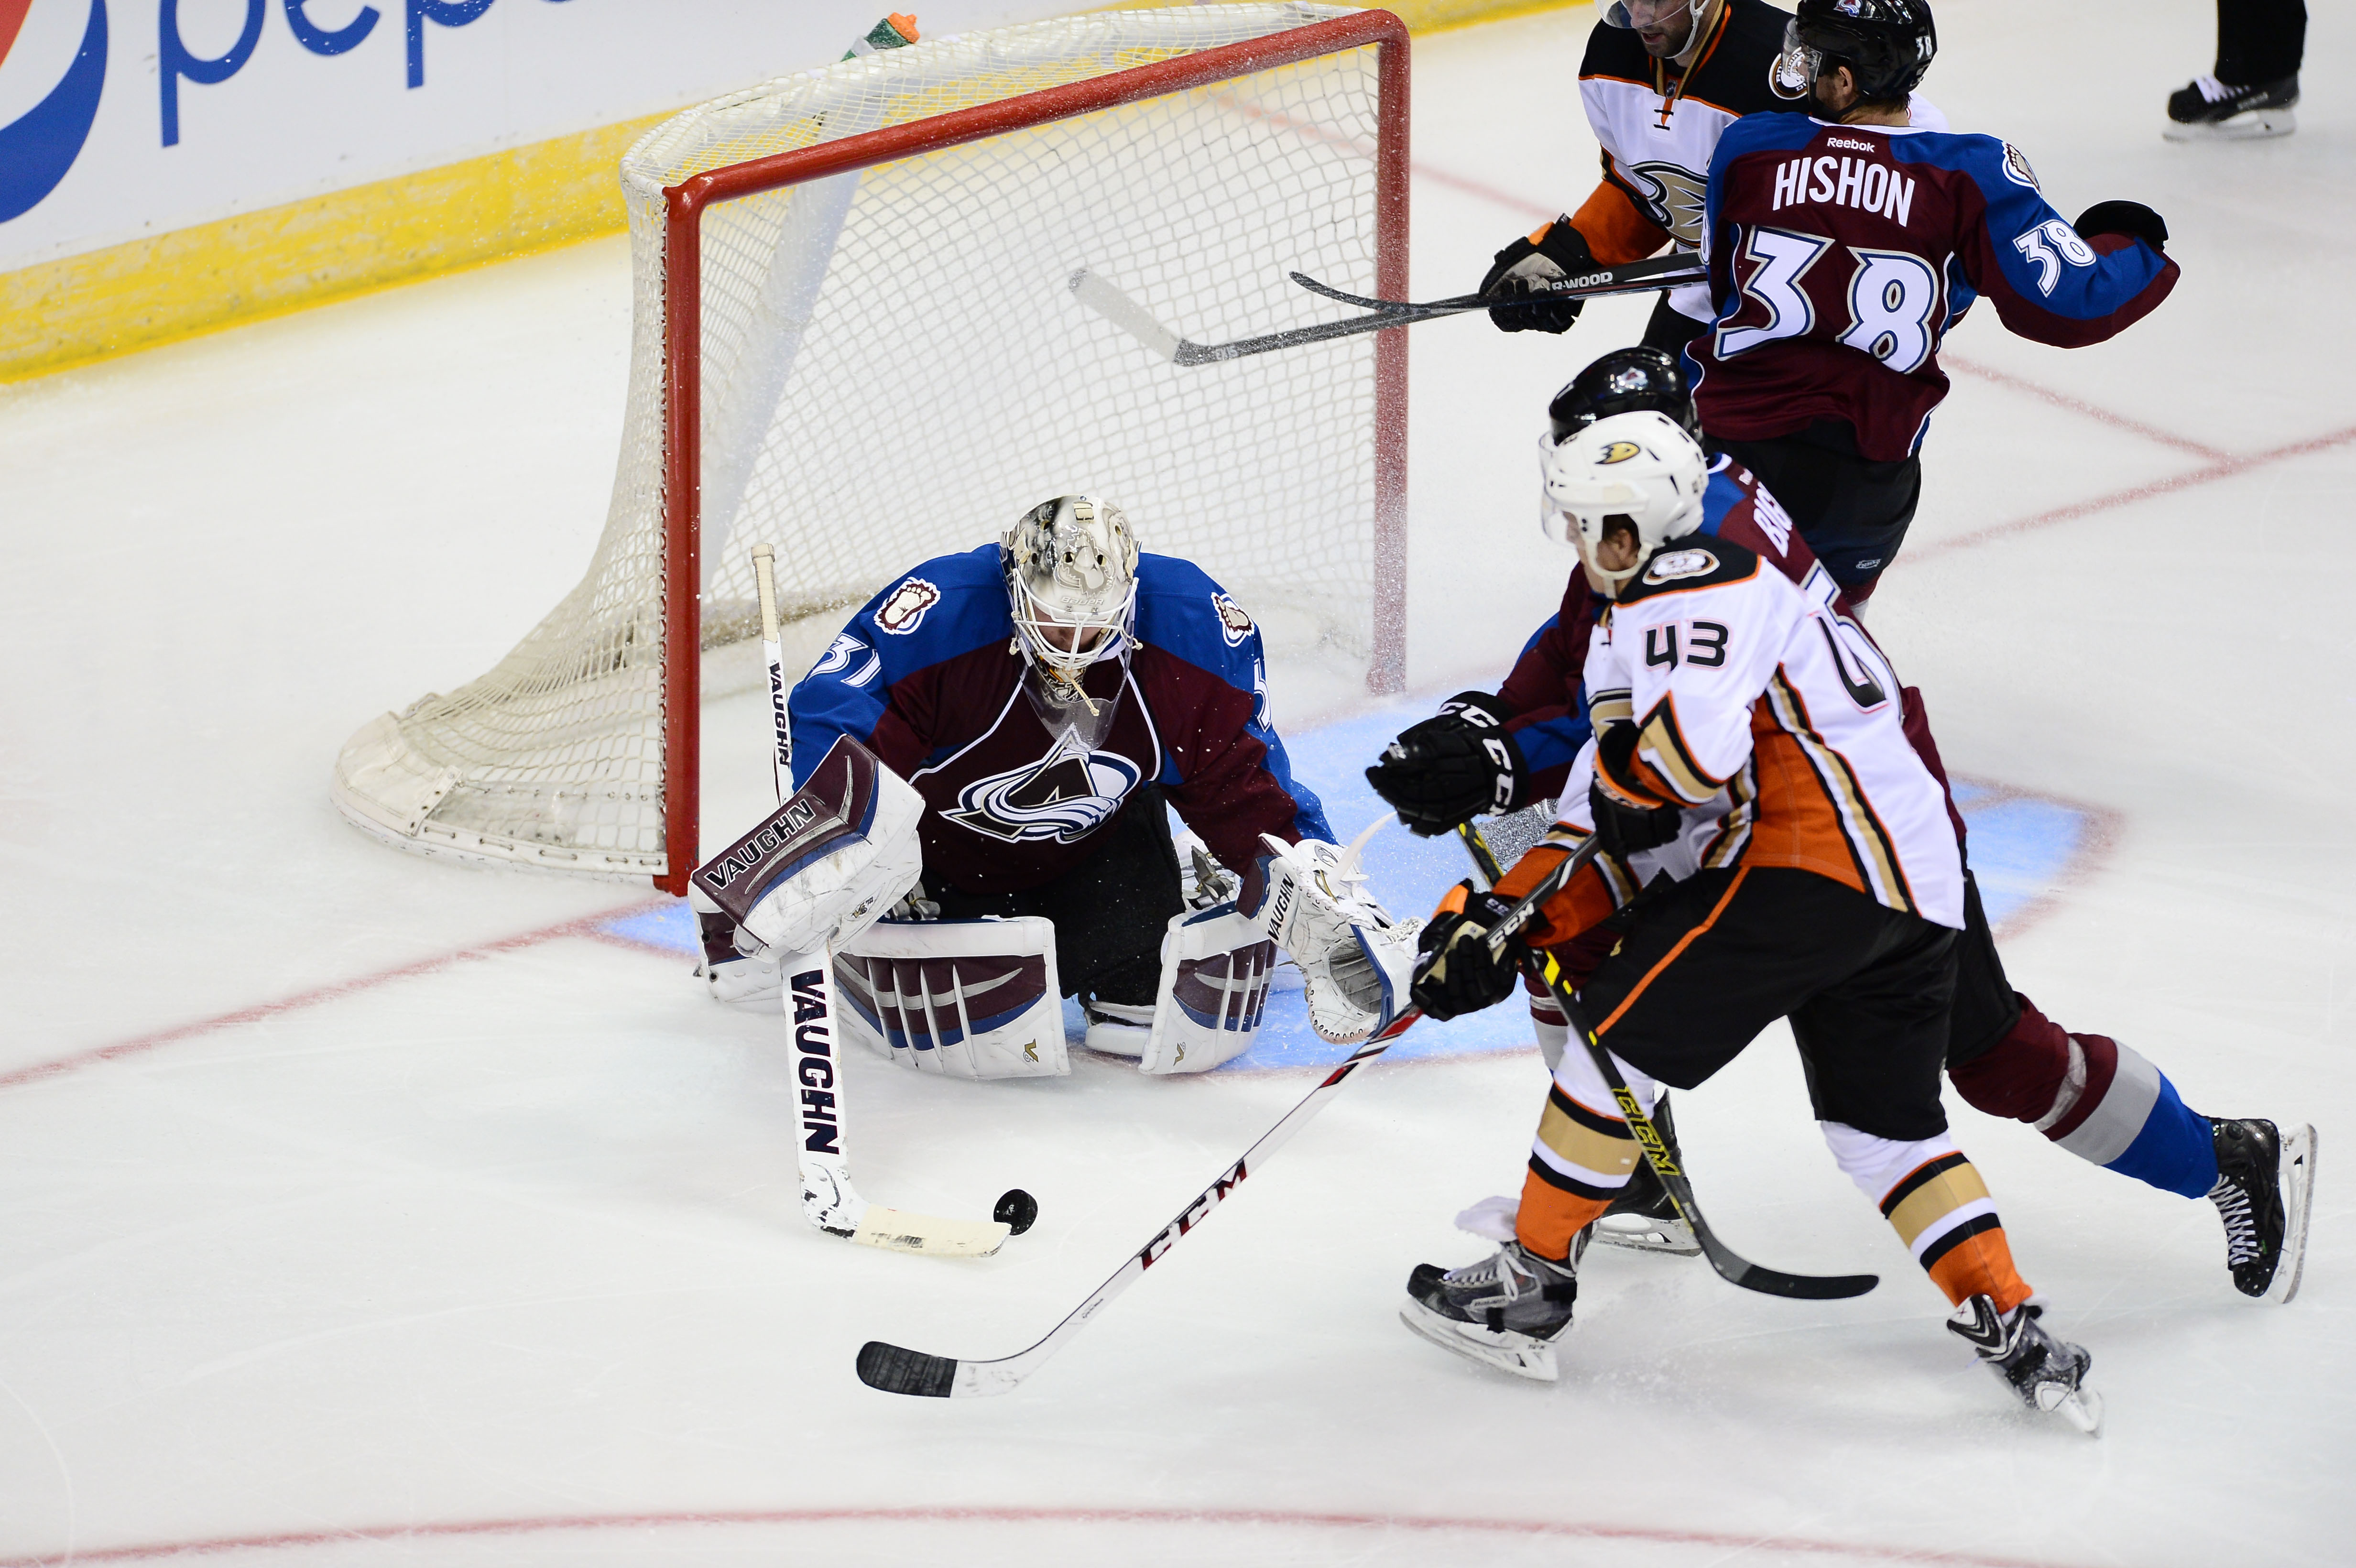 Max Friberg battles for position in front of the net last season against the Avalanche.